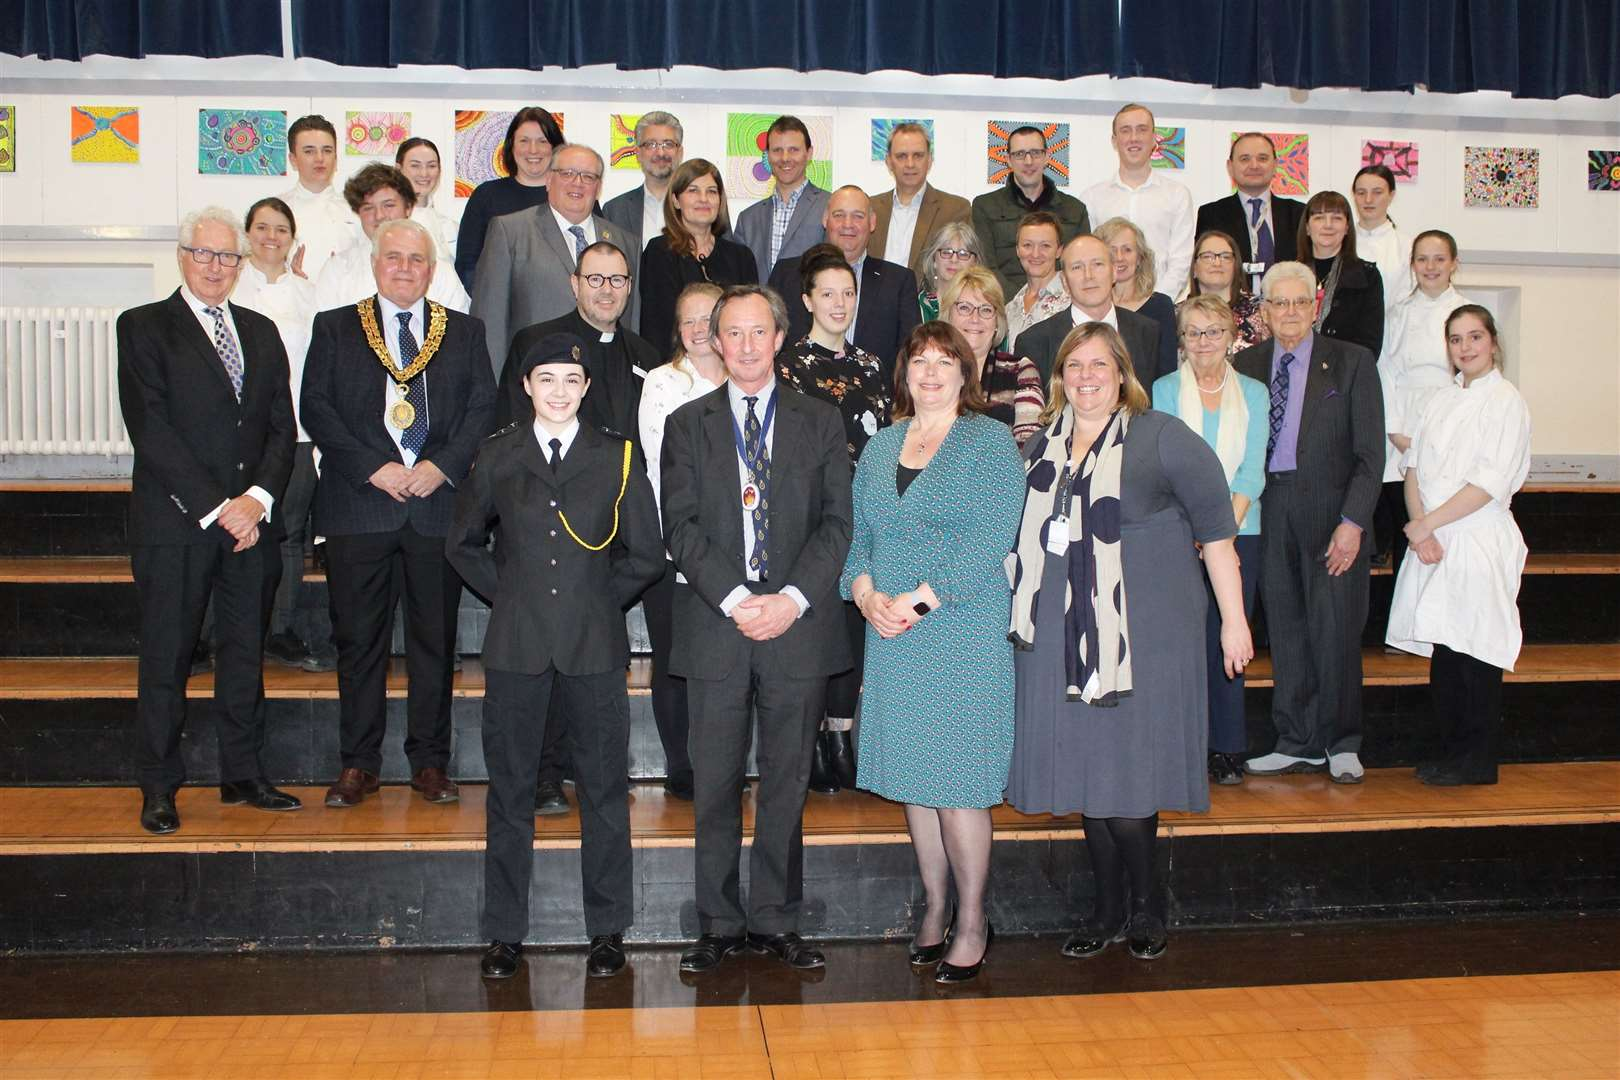 The High Sheriff of Suffolk, George Vestey, with guests and helpers at his thank you event at Castle Manor Academy. Picture by Gooderham PR (8239906)